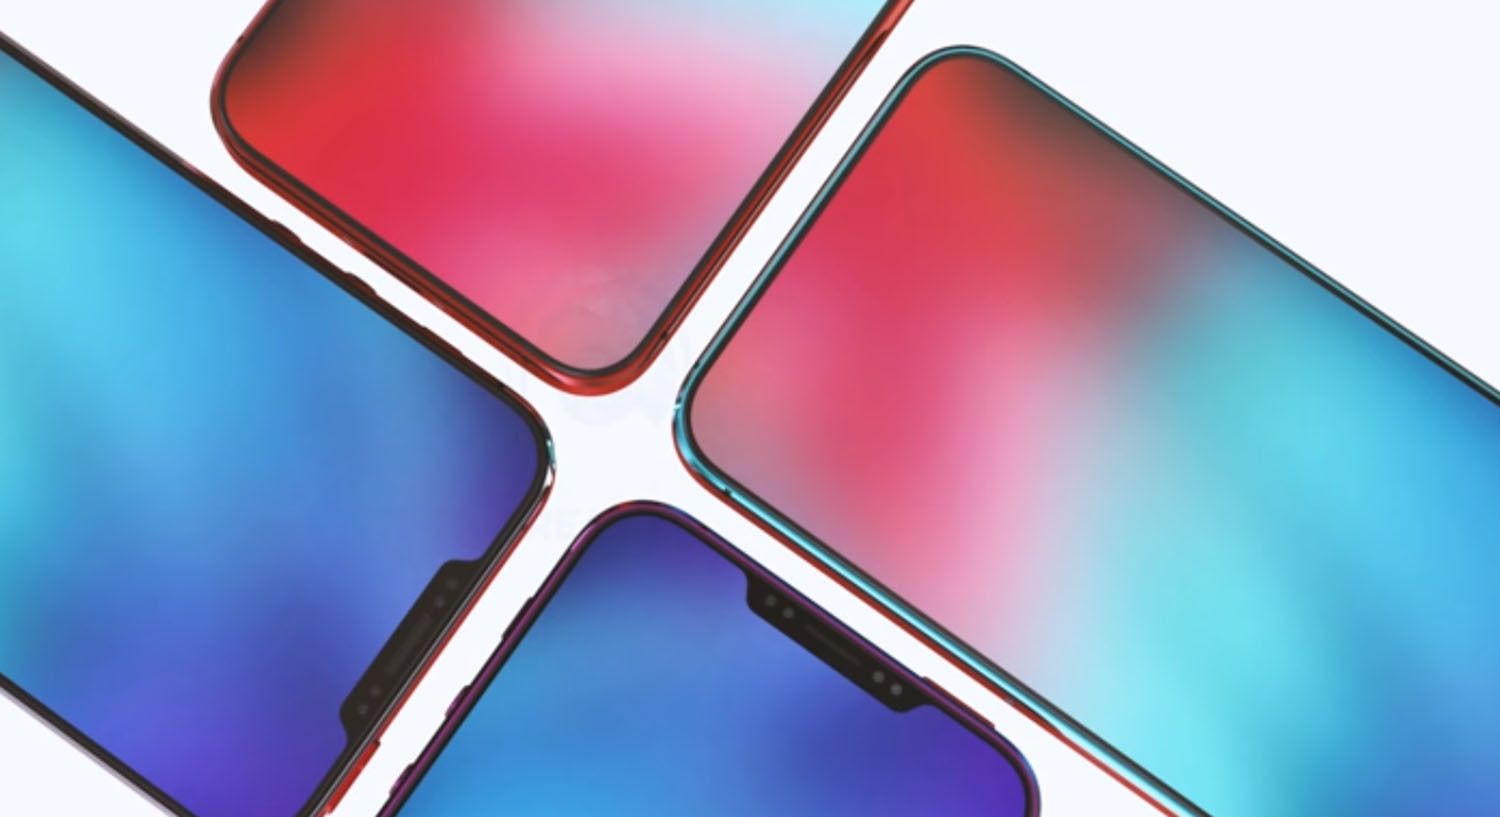 Image of article '2021 iPhone SE Display Size Details Shared by Tipster; New Model May Get Touch ID Embedded in Power Button'